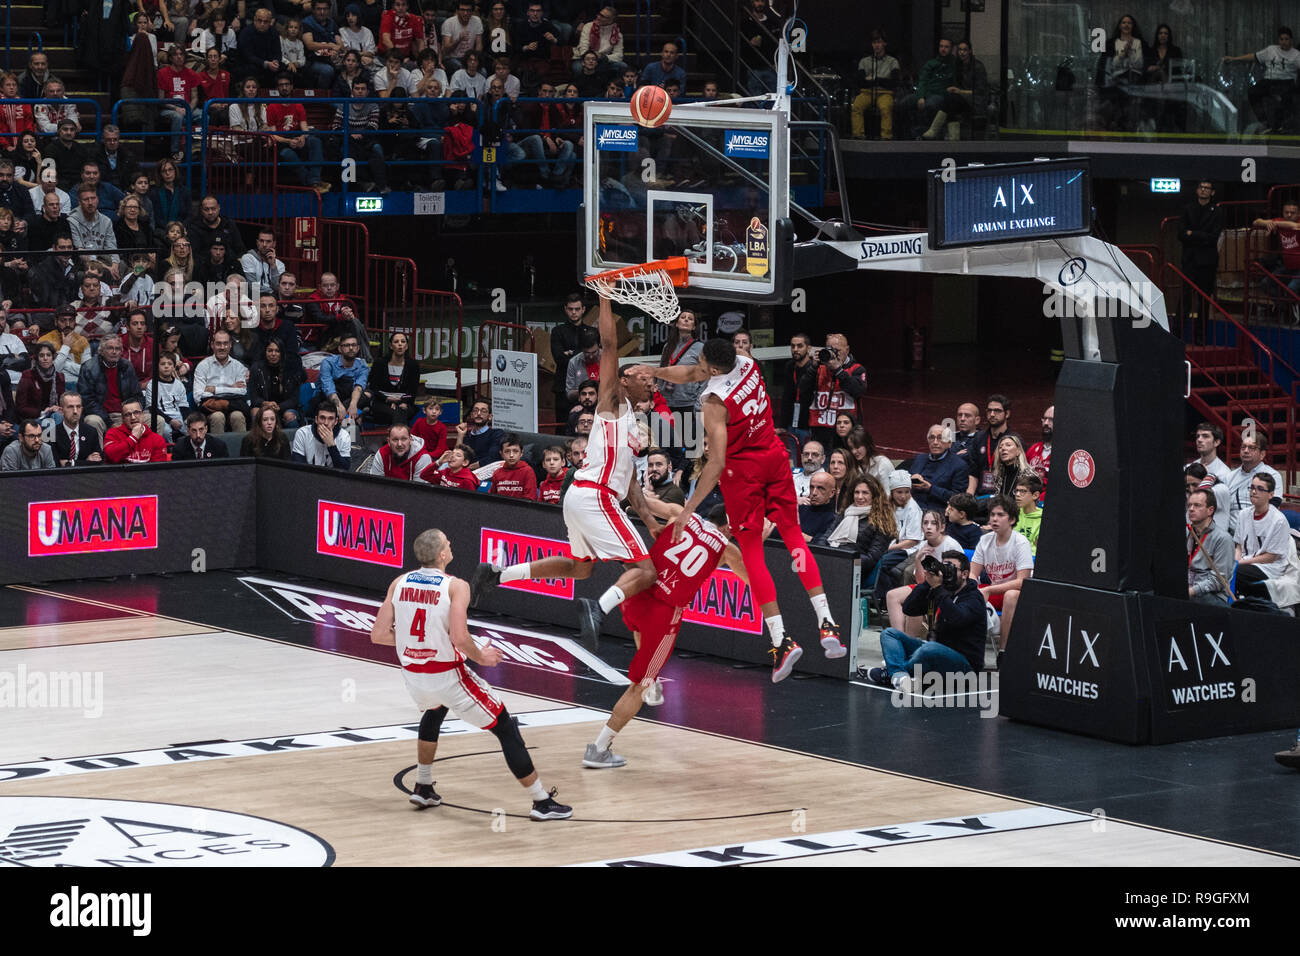 Milan, Italy. 23rd Dec, 2018. Milan, Italy. December 23, 2018. Olimpia Milano vs Pallacanestro Varese Credit: Luca Quadrio/Alamy Live News Stock Photo